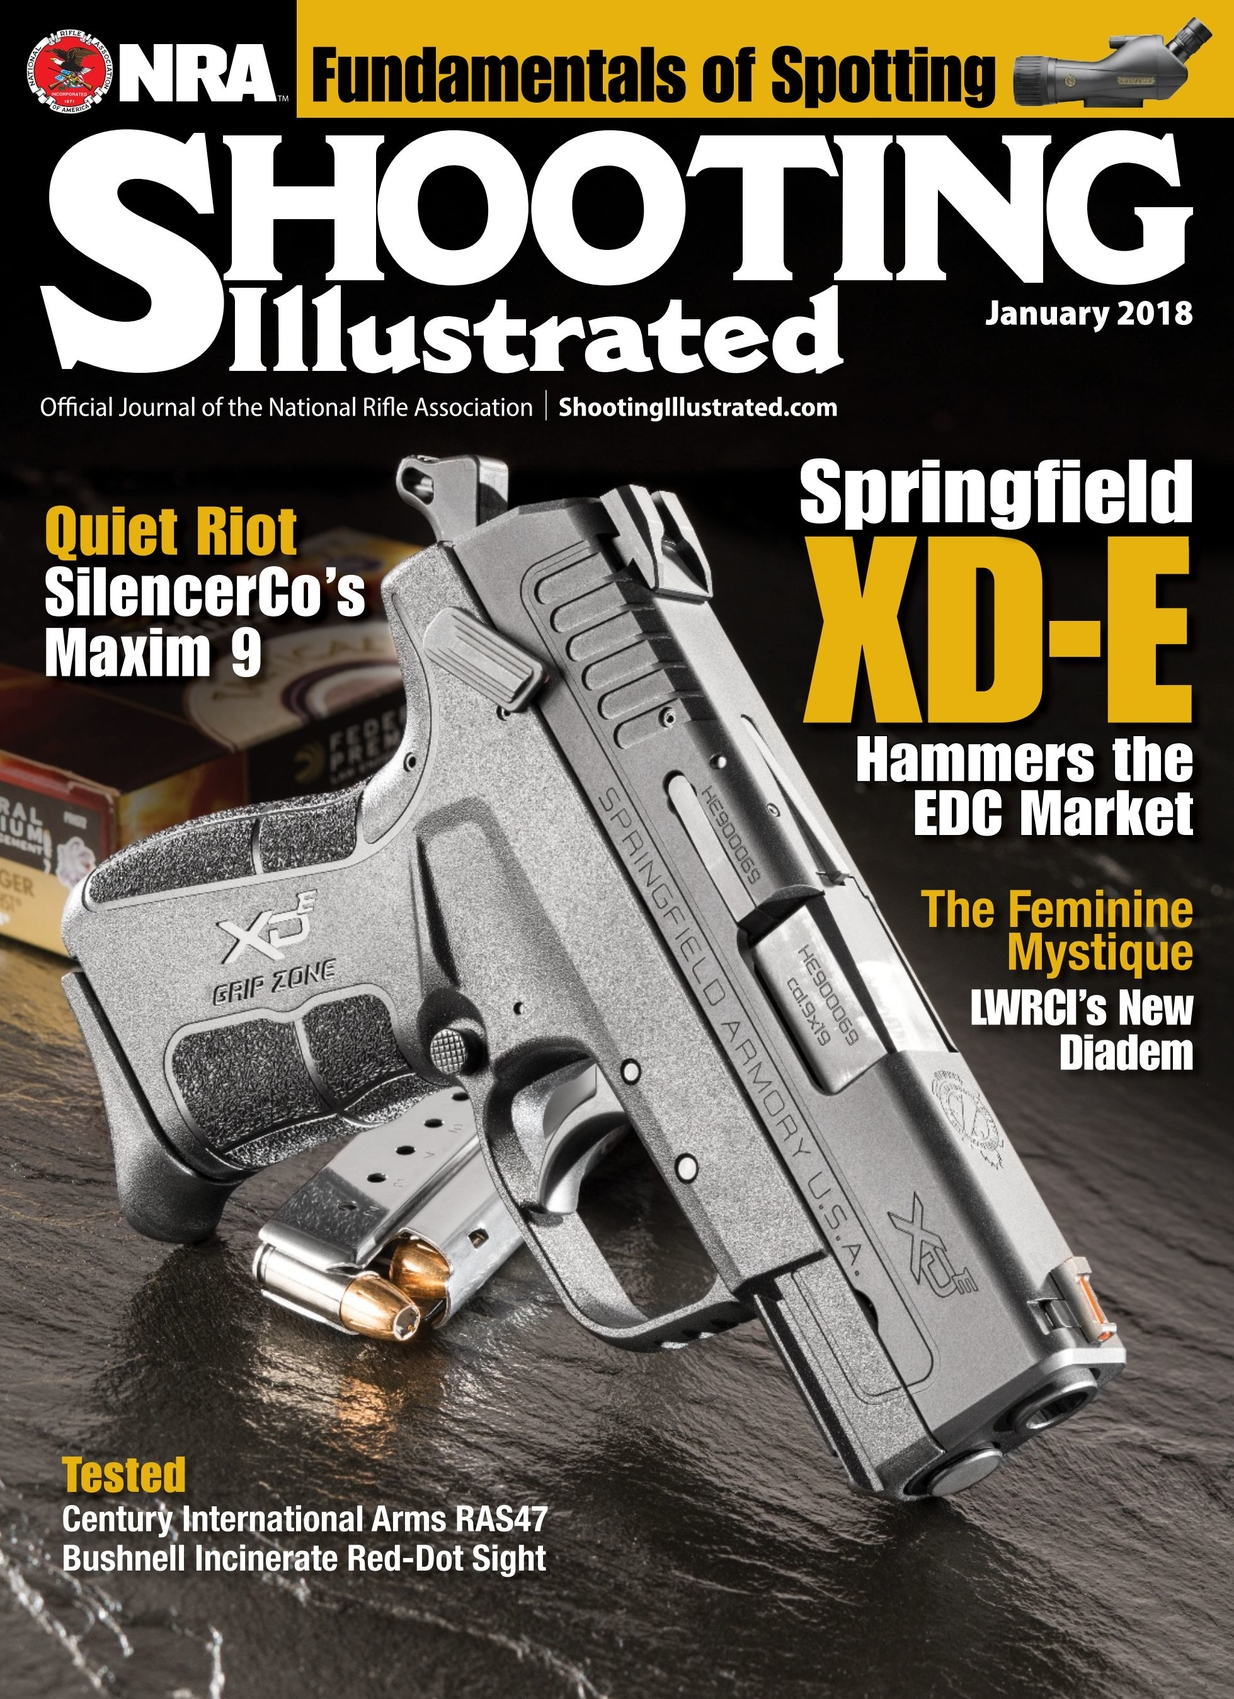 398a59819bc Shooting Illustrated - January 2018